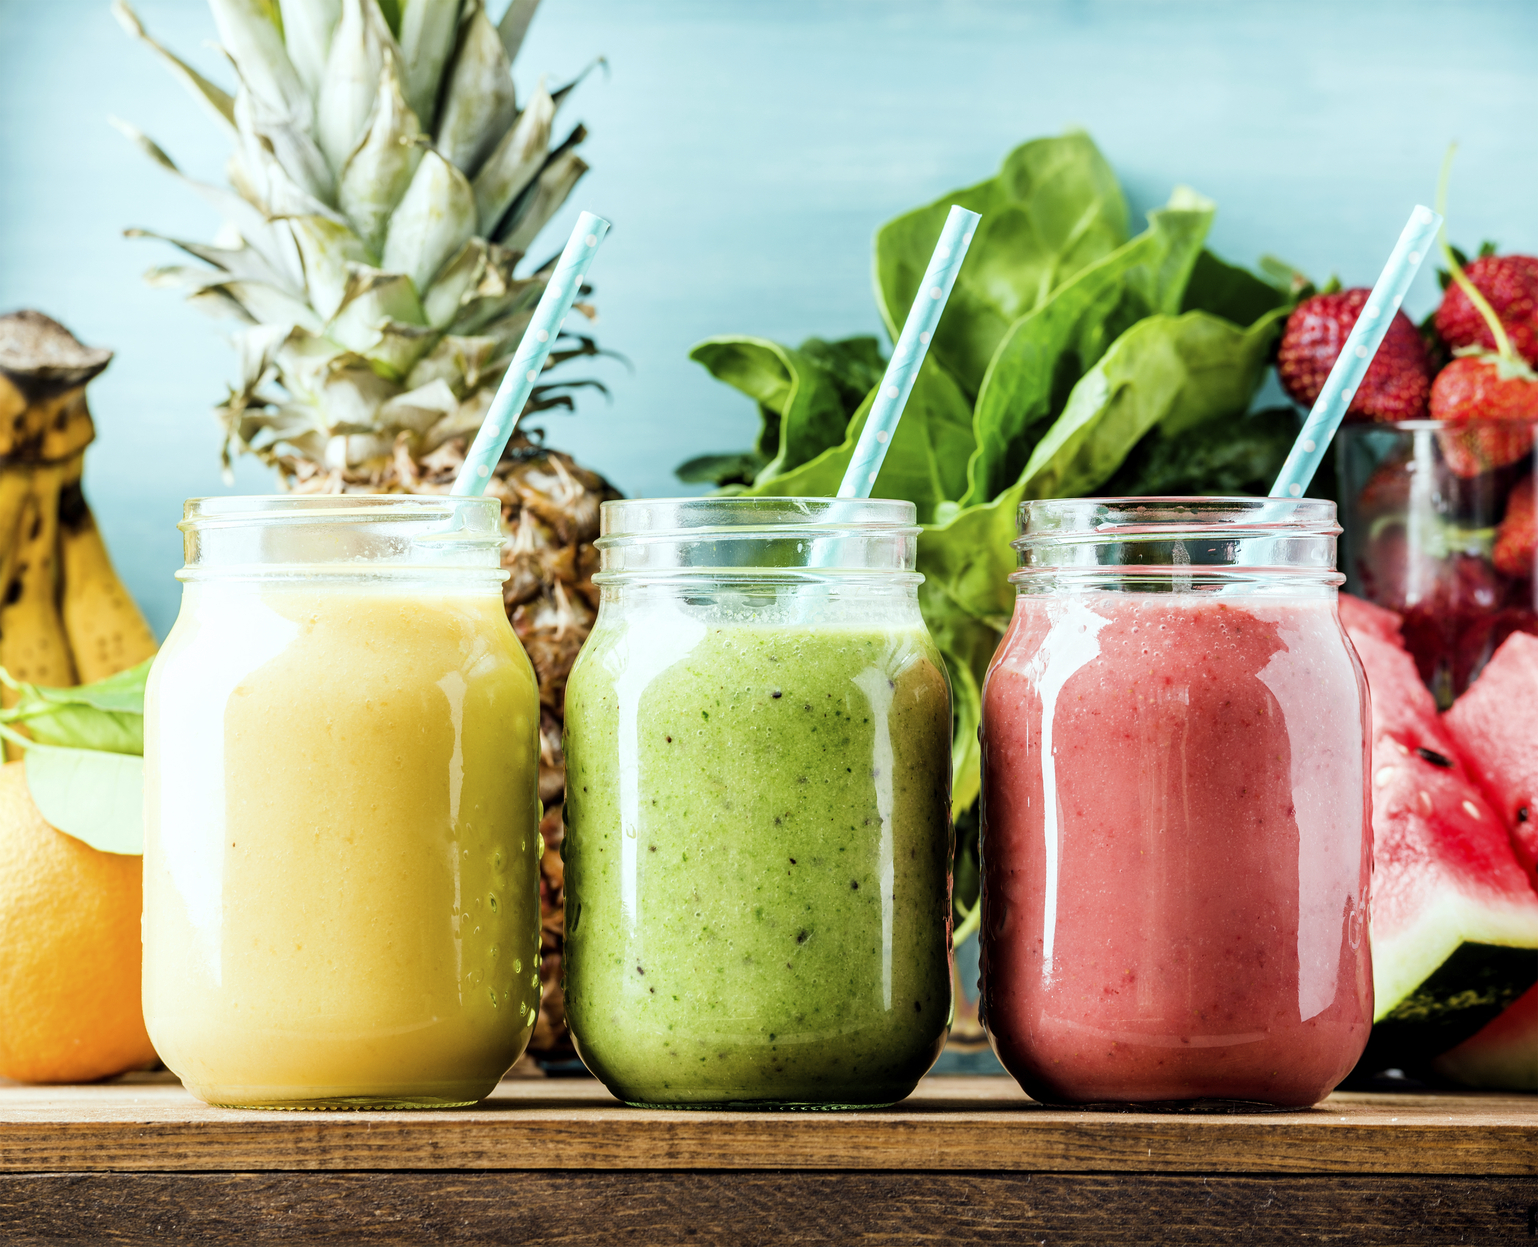 Delish Juices That Are Worth Every Last Squeeze! in Aurangabad cover pic